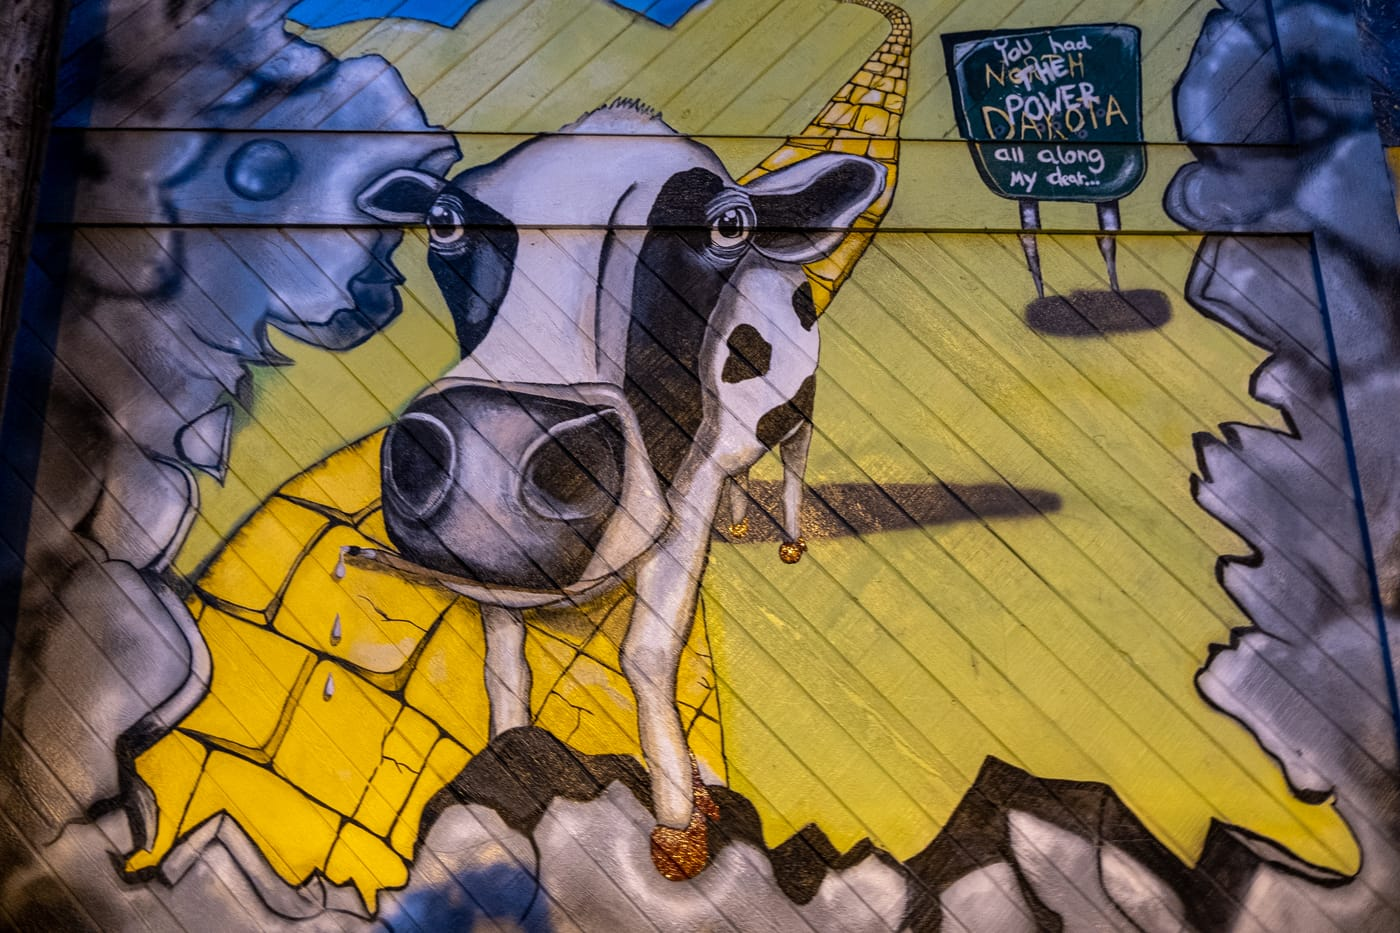 "Mahalia Mees cow meets Wizard of Oz ""Going Home"" mural declares, ""You had the power all along my dear..."" Alley 5.5: Bismarck Art Alley in North Dakota - Street art and Murals in Bismarck, North Dakota"